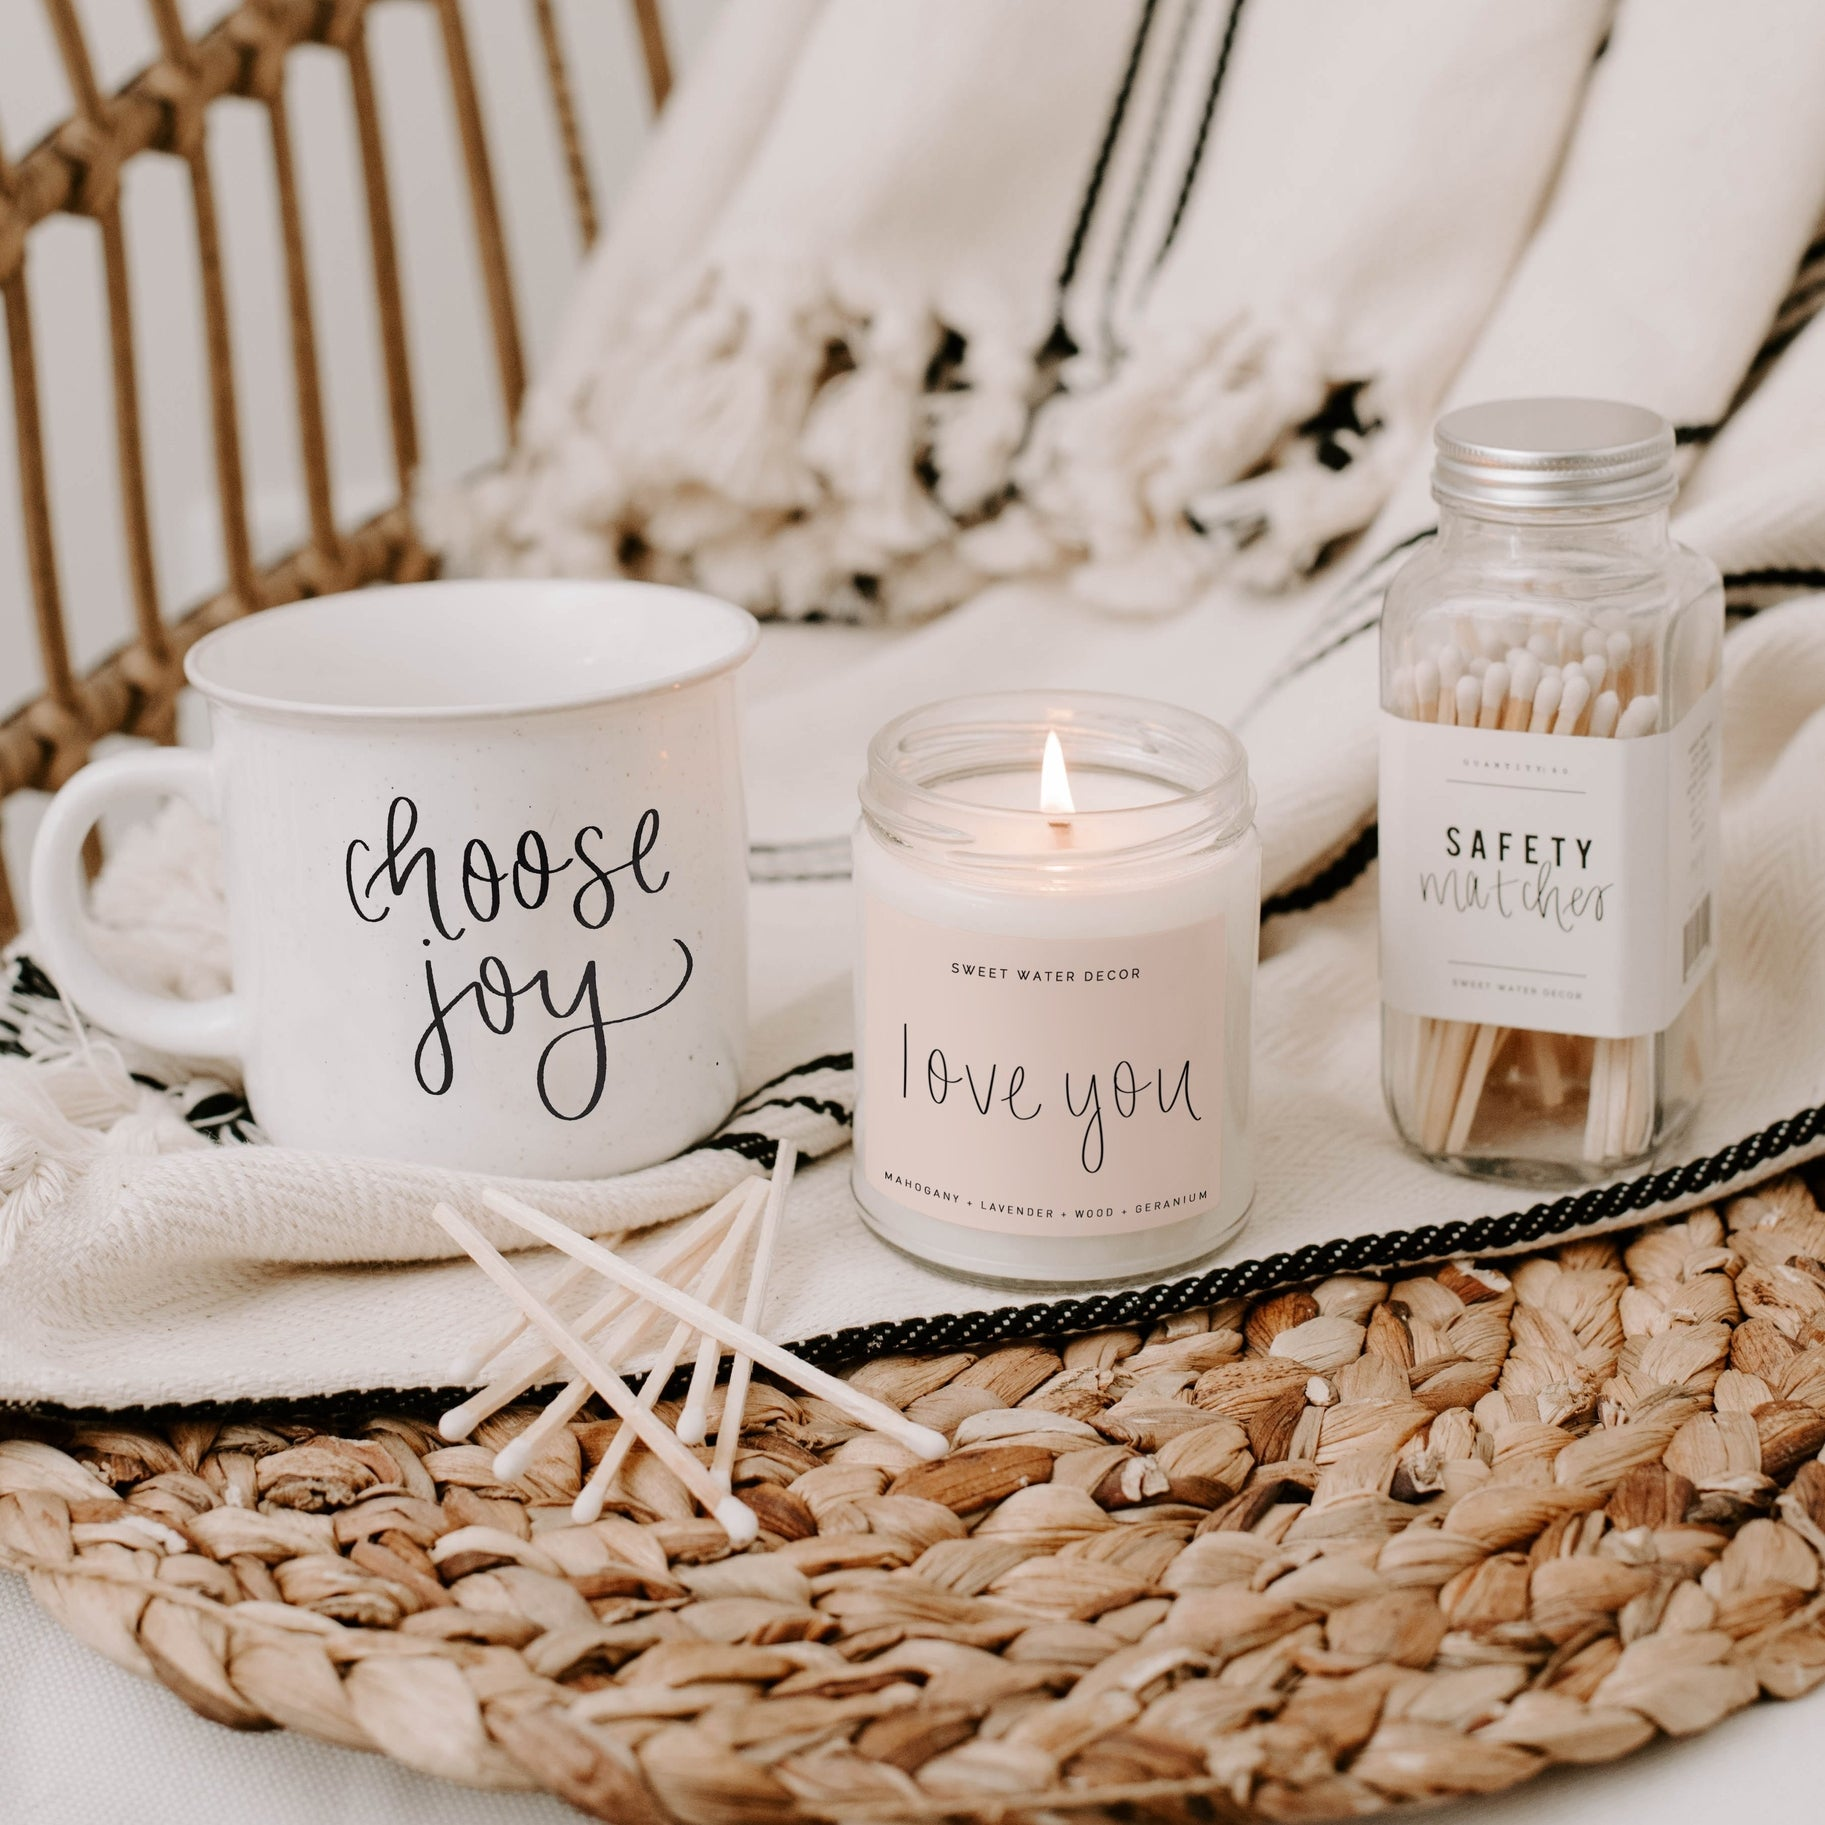 Clear glass candle filled with white wax with a blush pink love you label burns while sitting on a throw blanket next to safety matches and a white mug